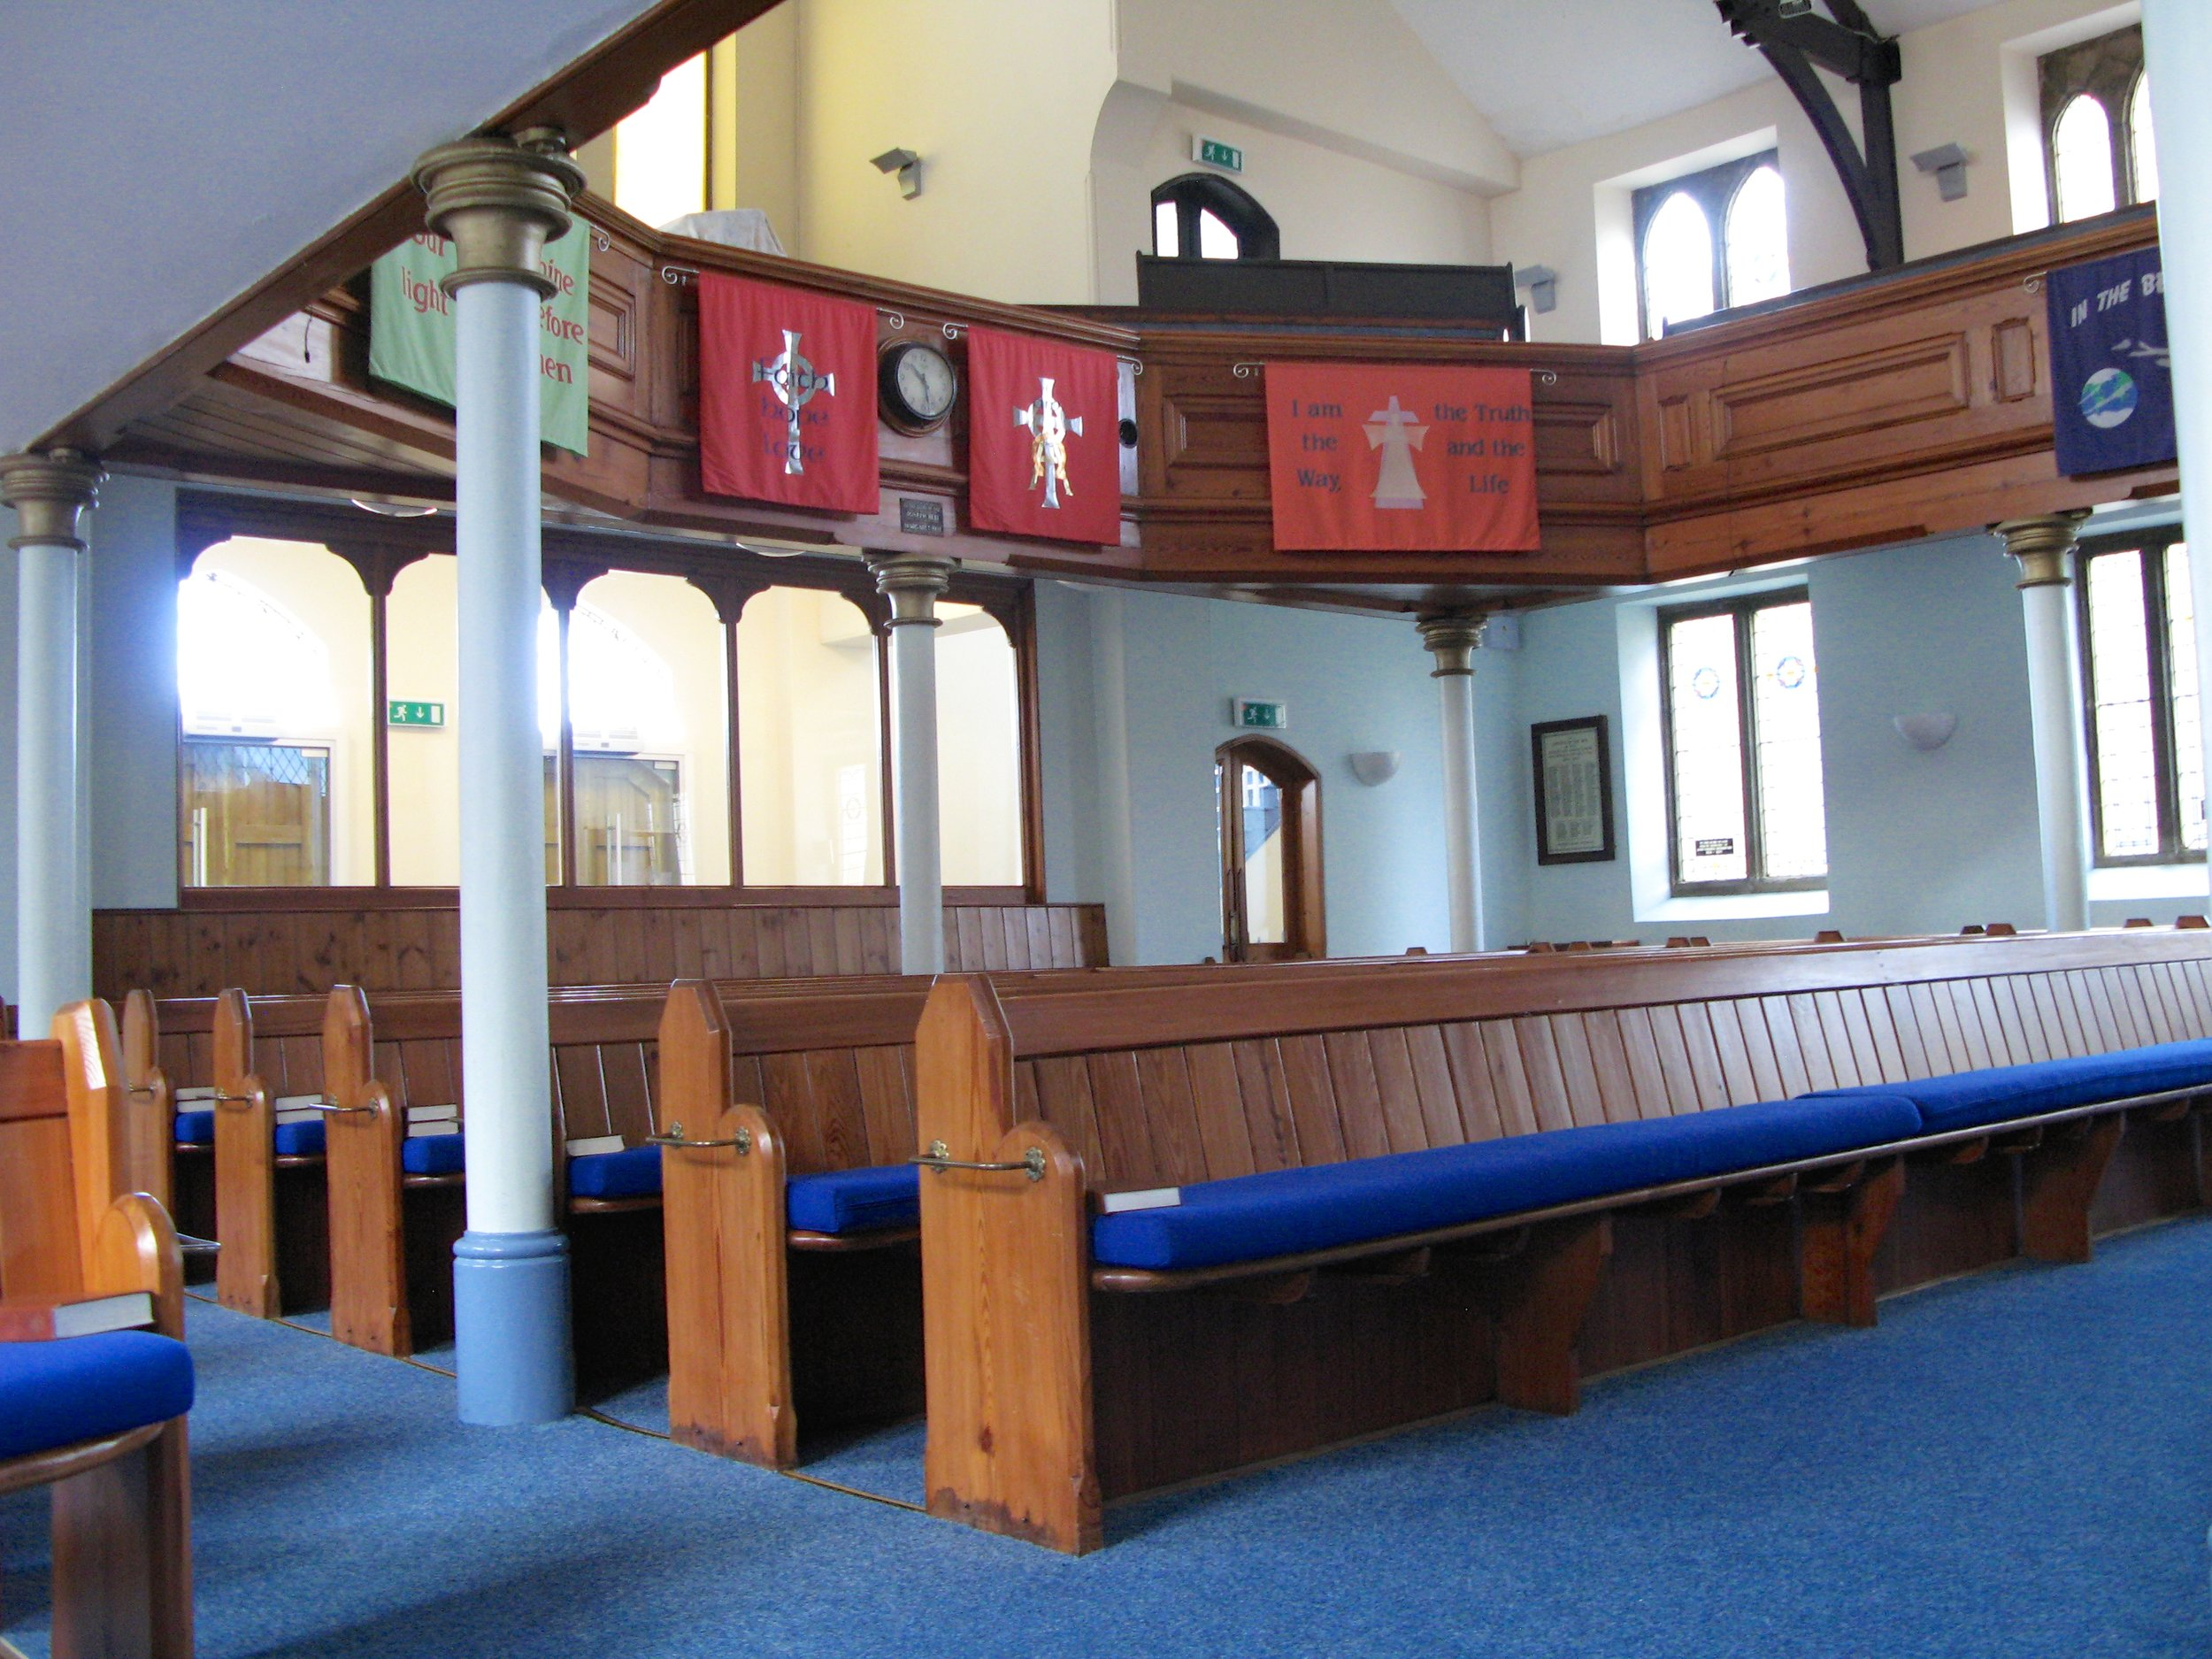 Church Pews & Gallery